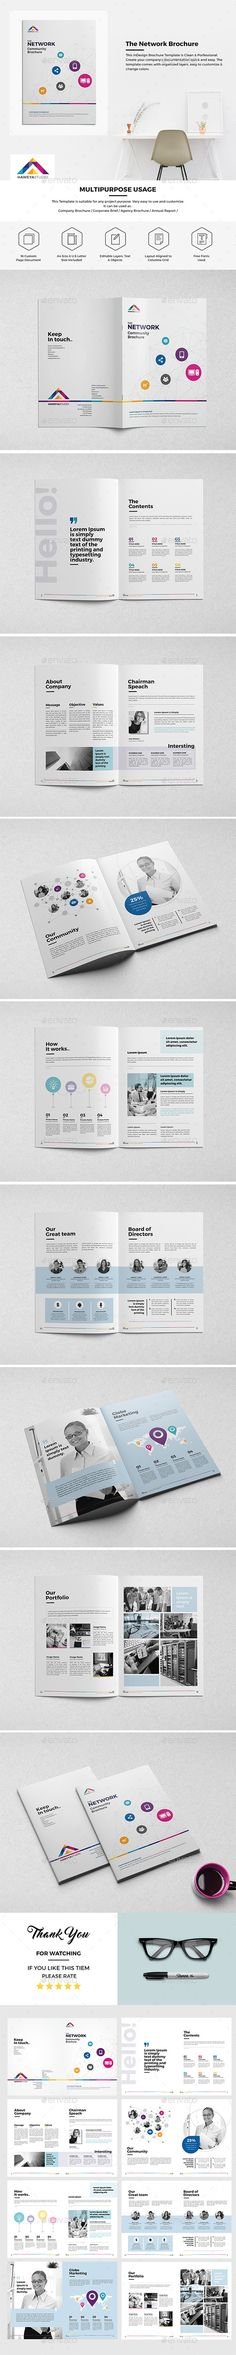 16 Pages Haweya Community Brochure Template PSD. Download here: http://graphicriver.net/item/haweya-community-brochure-16-pages/15582093?ref=ksioks